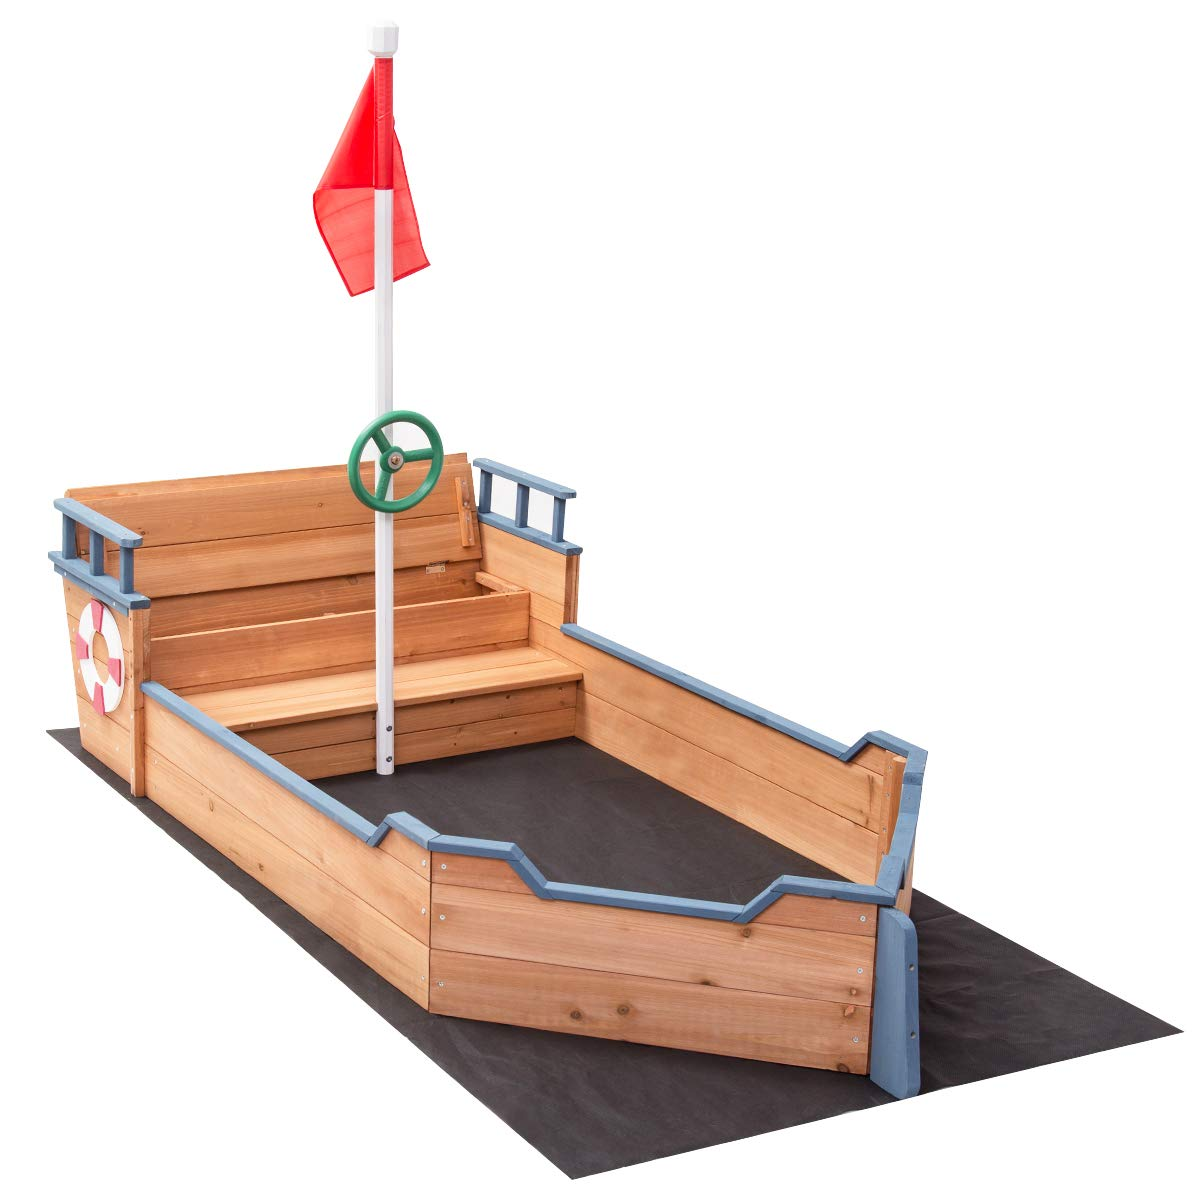 Costzon Pirate Boat Wood Sandbox for Kids with Bench Seat and Flag, Pirate Sandboat by Costzon